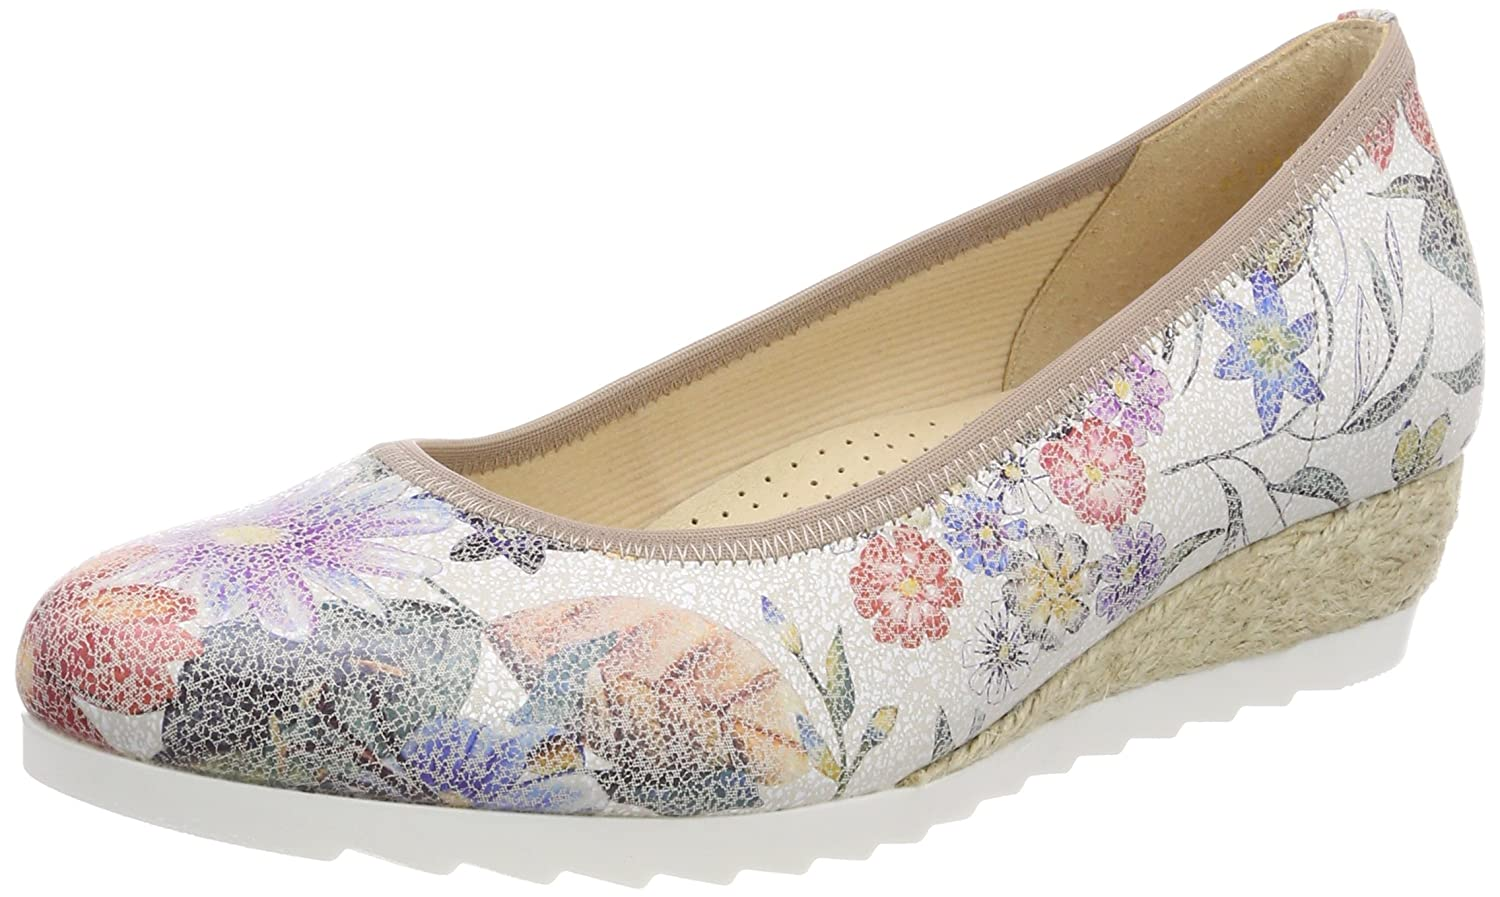 Gabor Shoes EU|Multicolore Comfort Sport, Ballerines Femme 38.5 EU|Multicolore Shoes (Multicolor Jute) 02e516